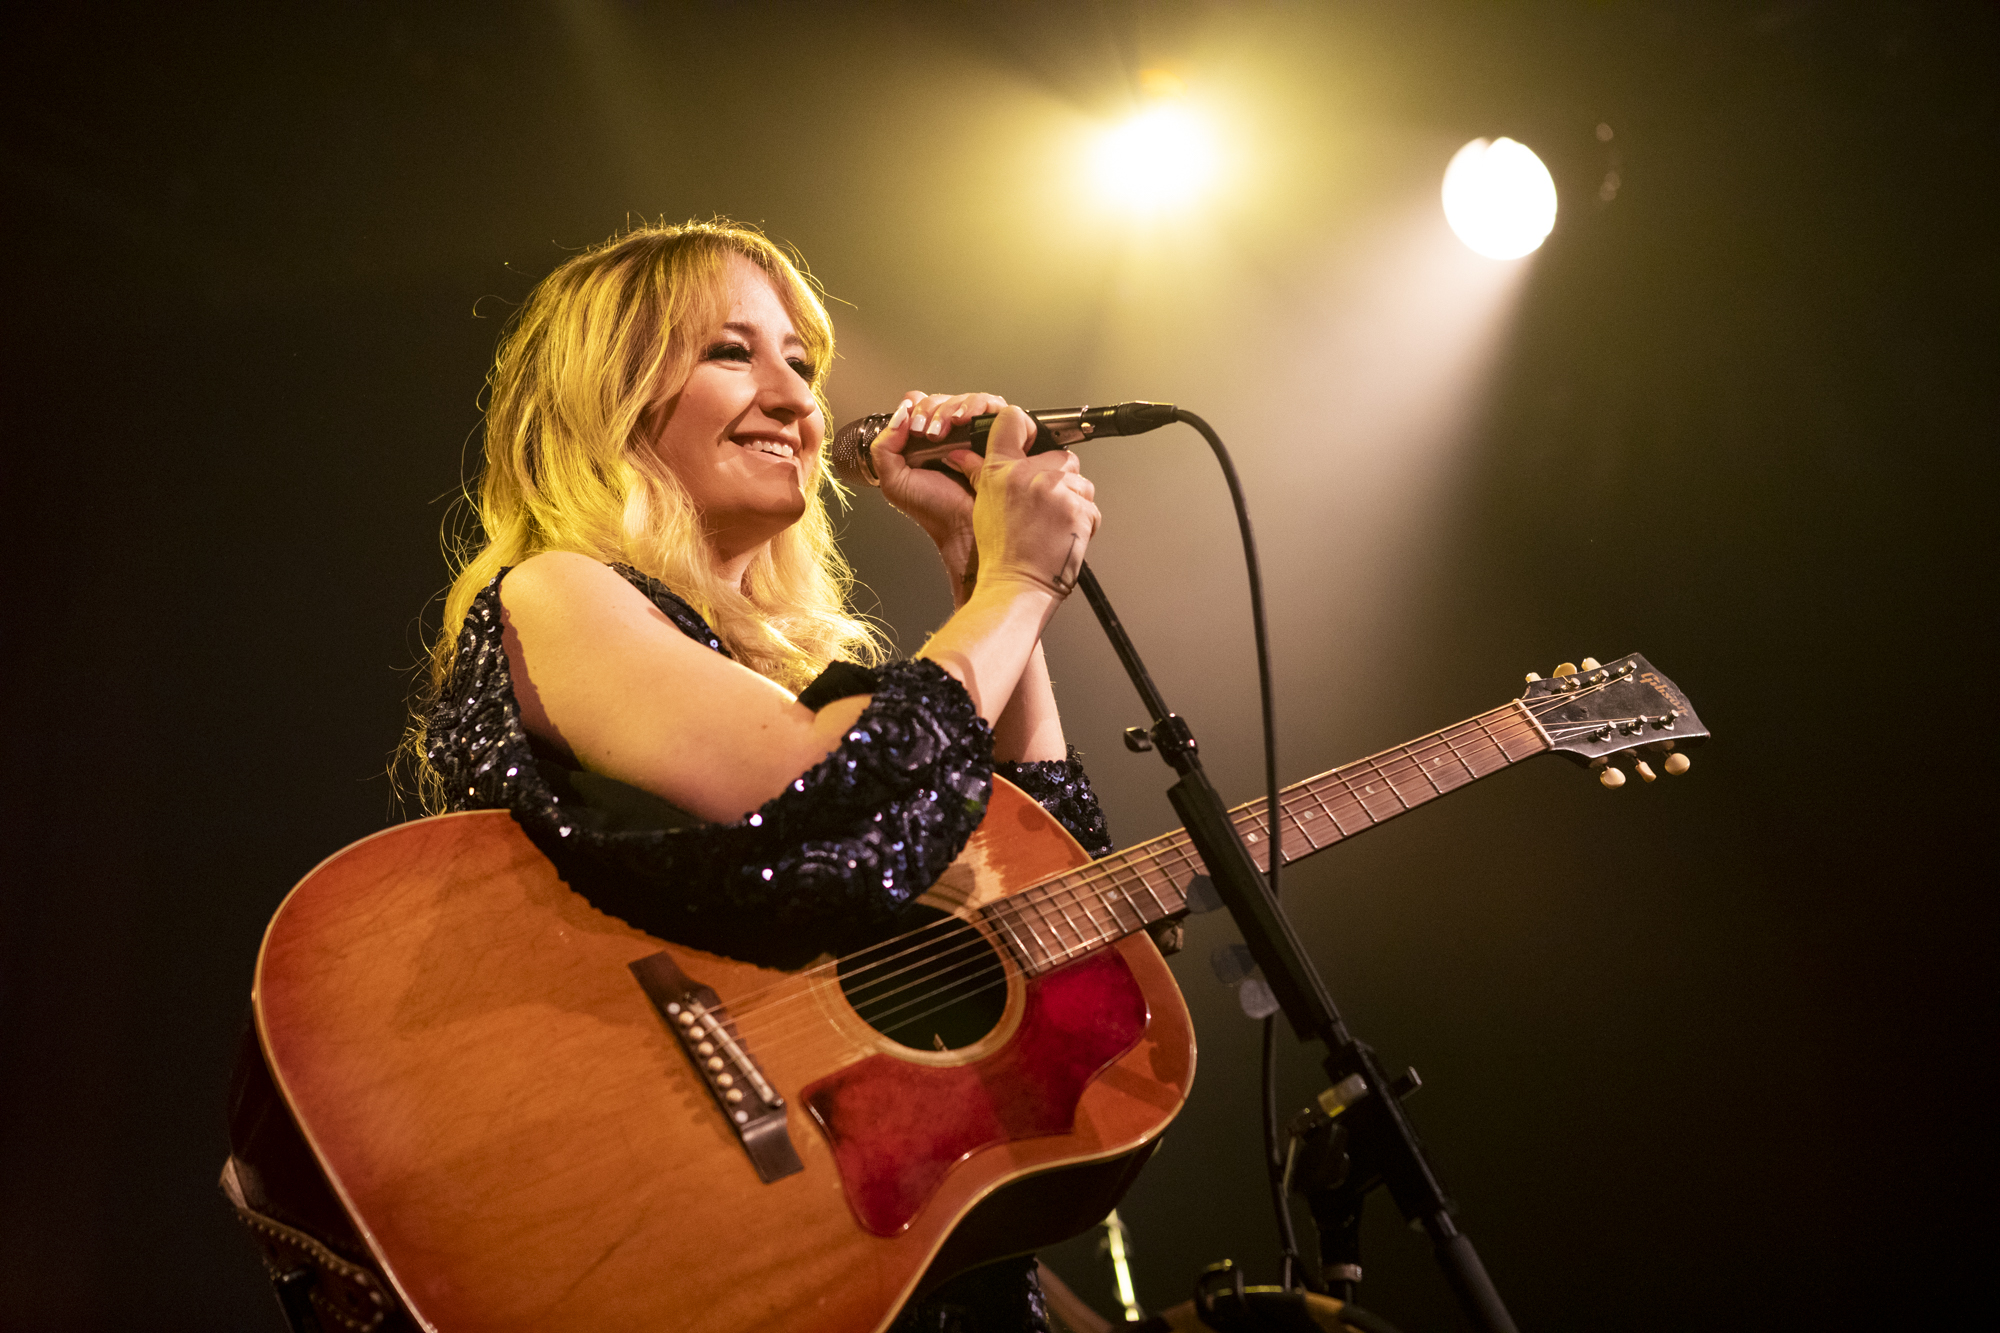 Margo Price plays on New Year's Eve at Music Hall Of Williamsburg in Williamsburg, Brooklyn, New York on Dec. 31, 2018. (© Michael Katzif - Do not use or republish without prior consent.)